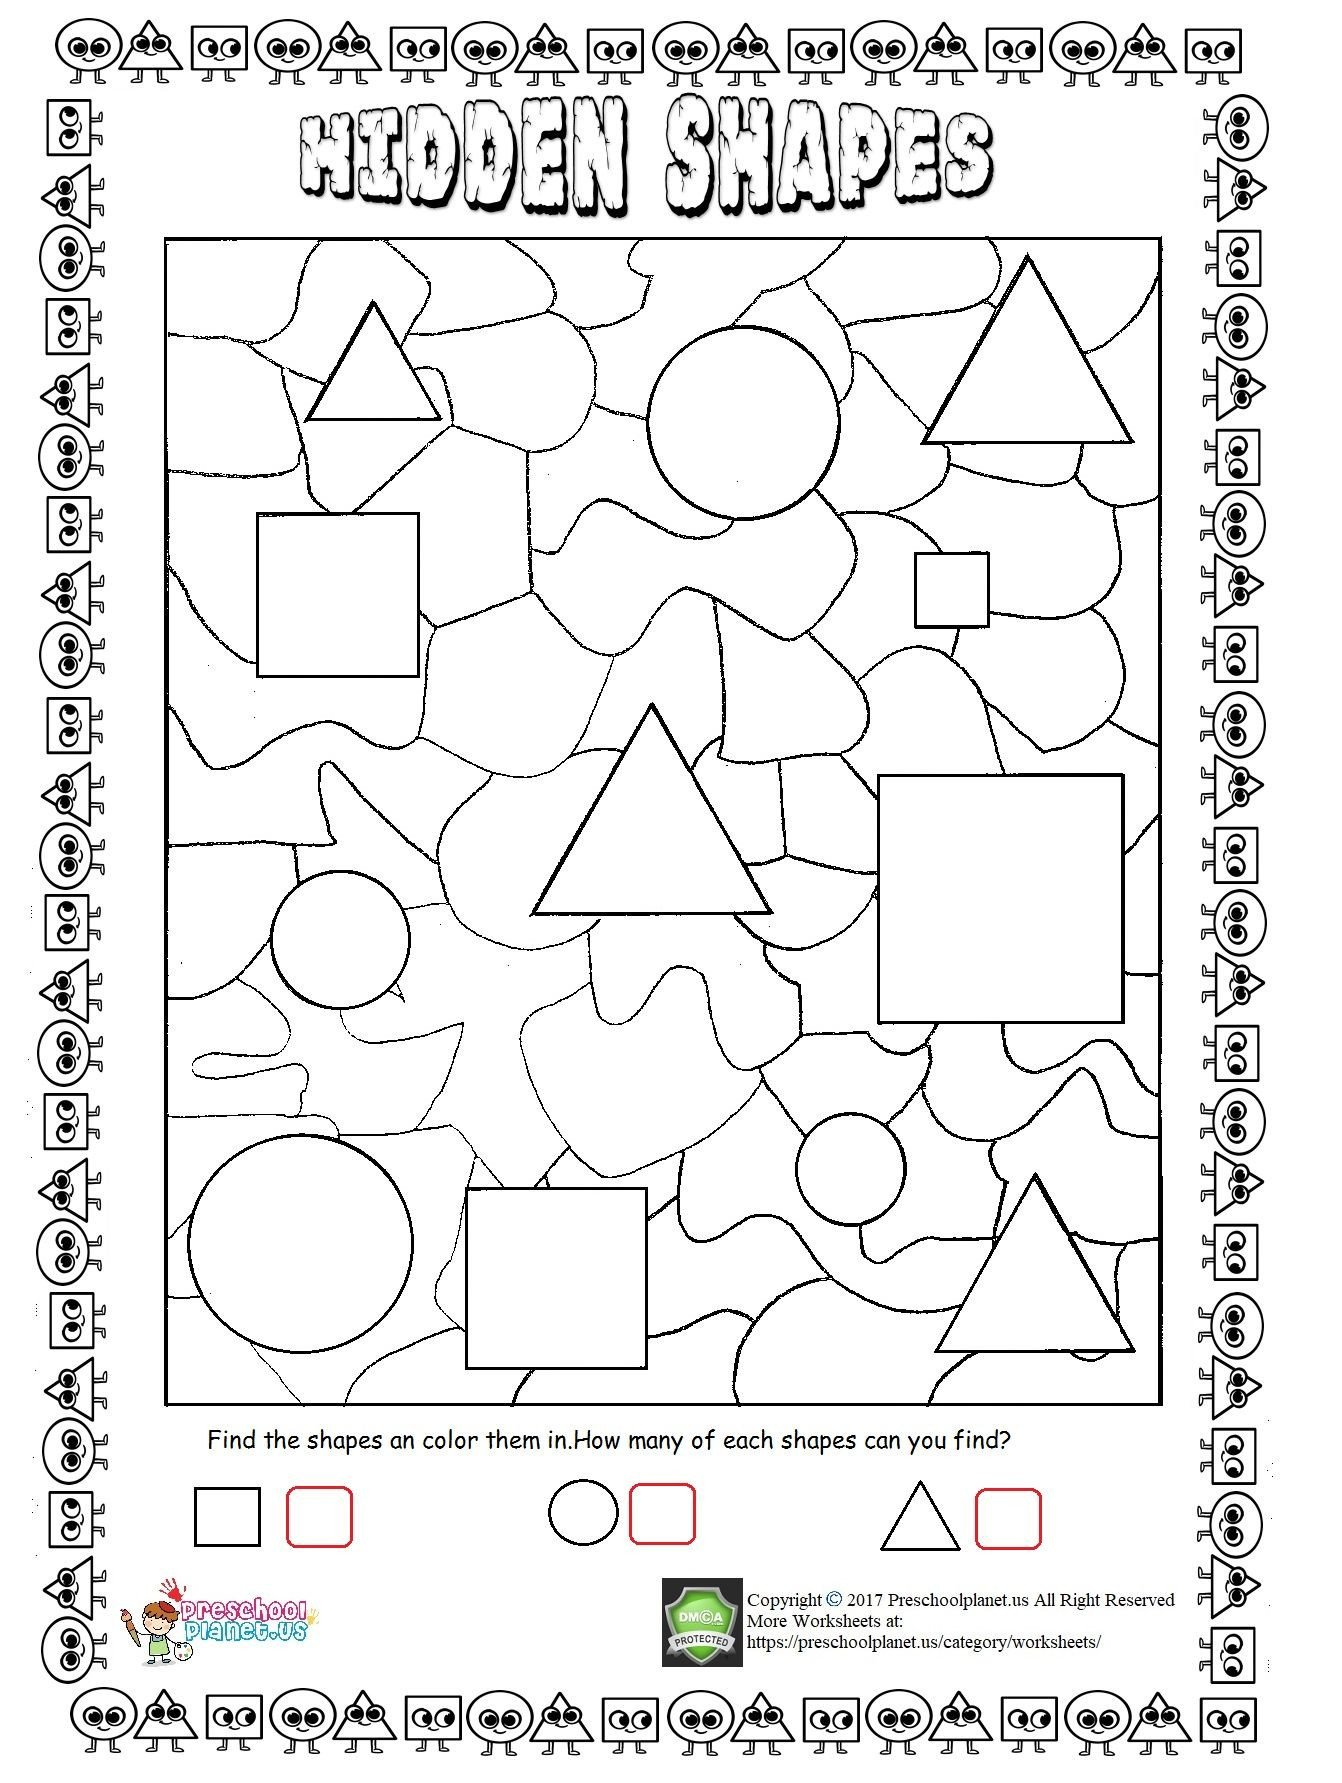 Geometric Shape Pattern Worksheets Geometric Shapes Patterns Worksheets Printable and Nets